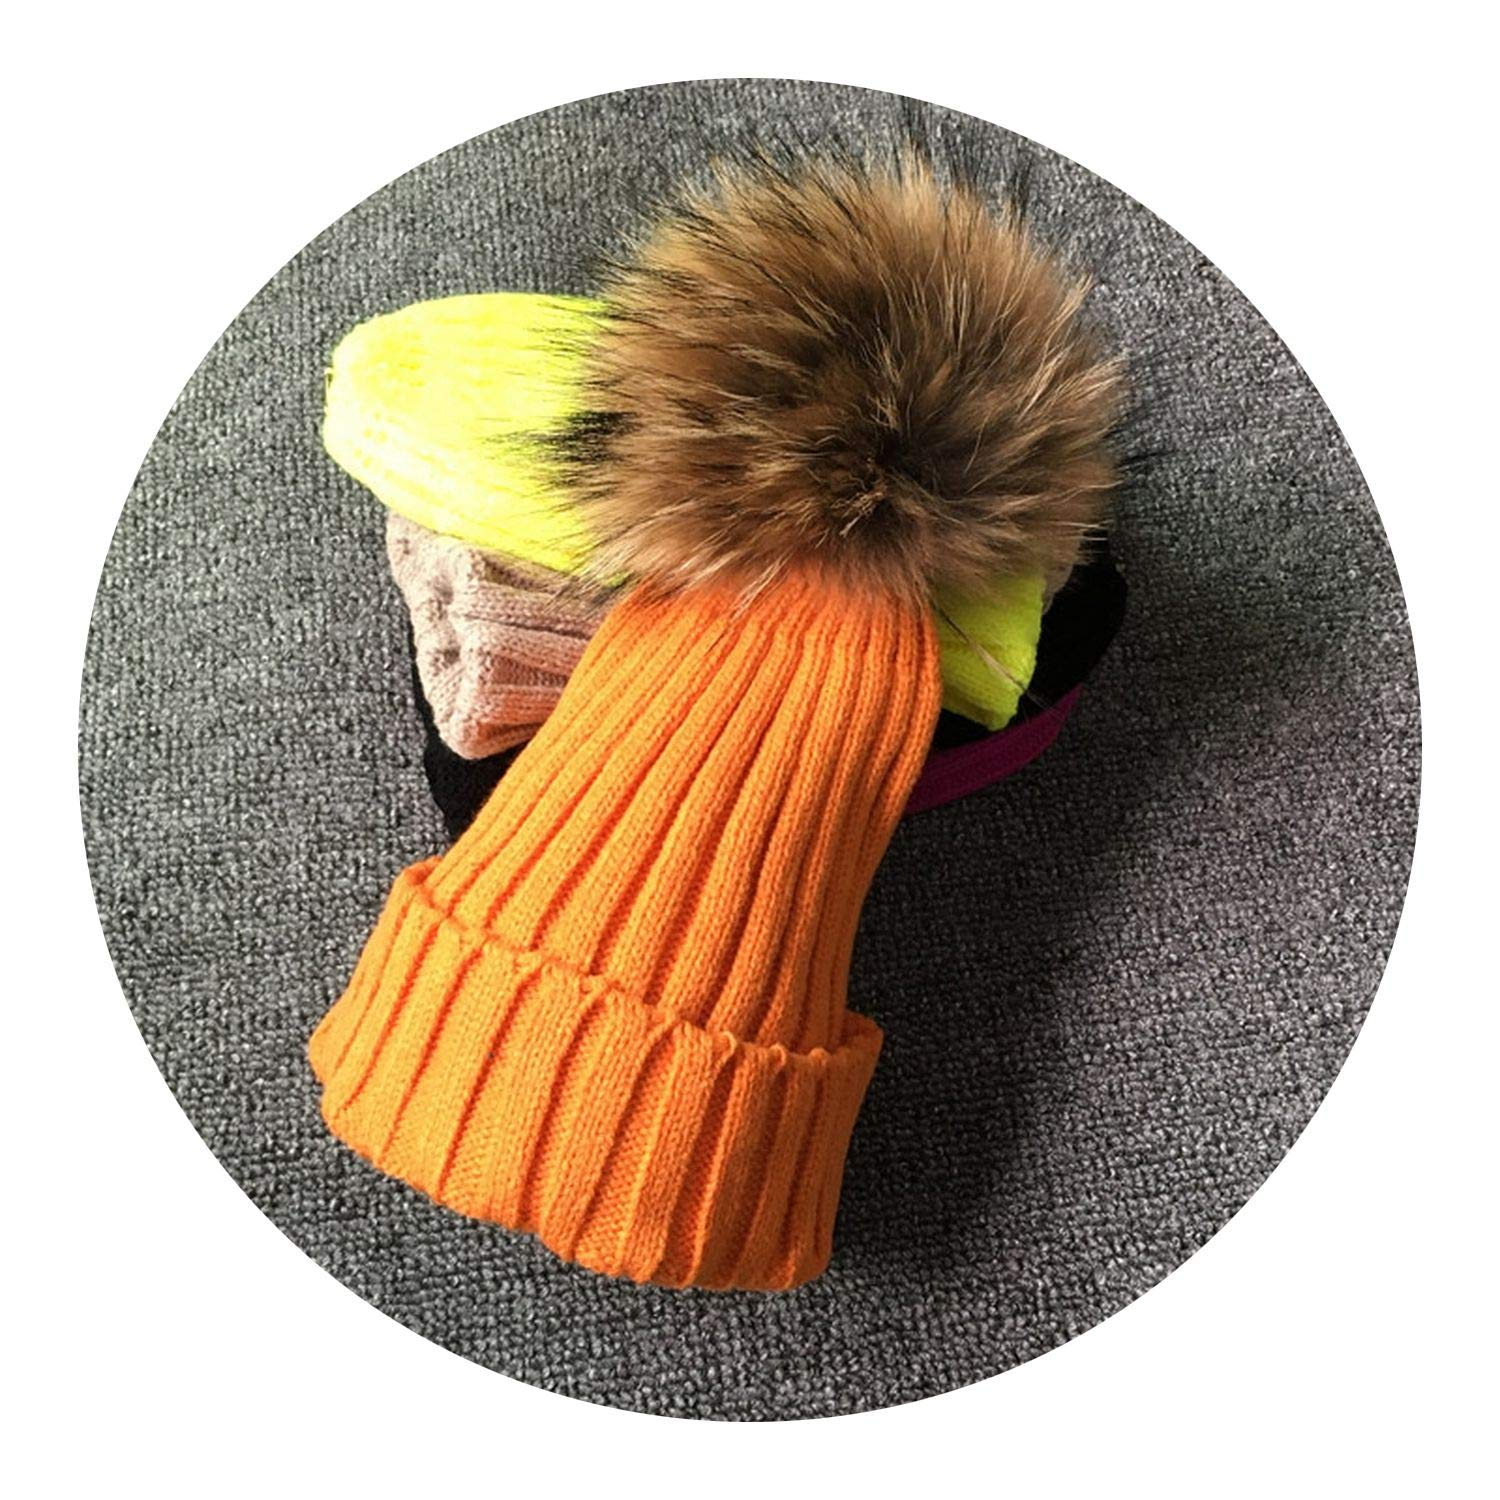 Winter Female Fur Pom Poms hat Winter Hat for Women Girls Hat,Orange with Fur,Adult Size